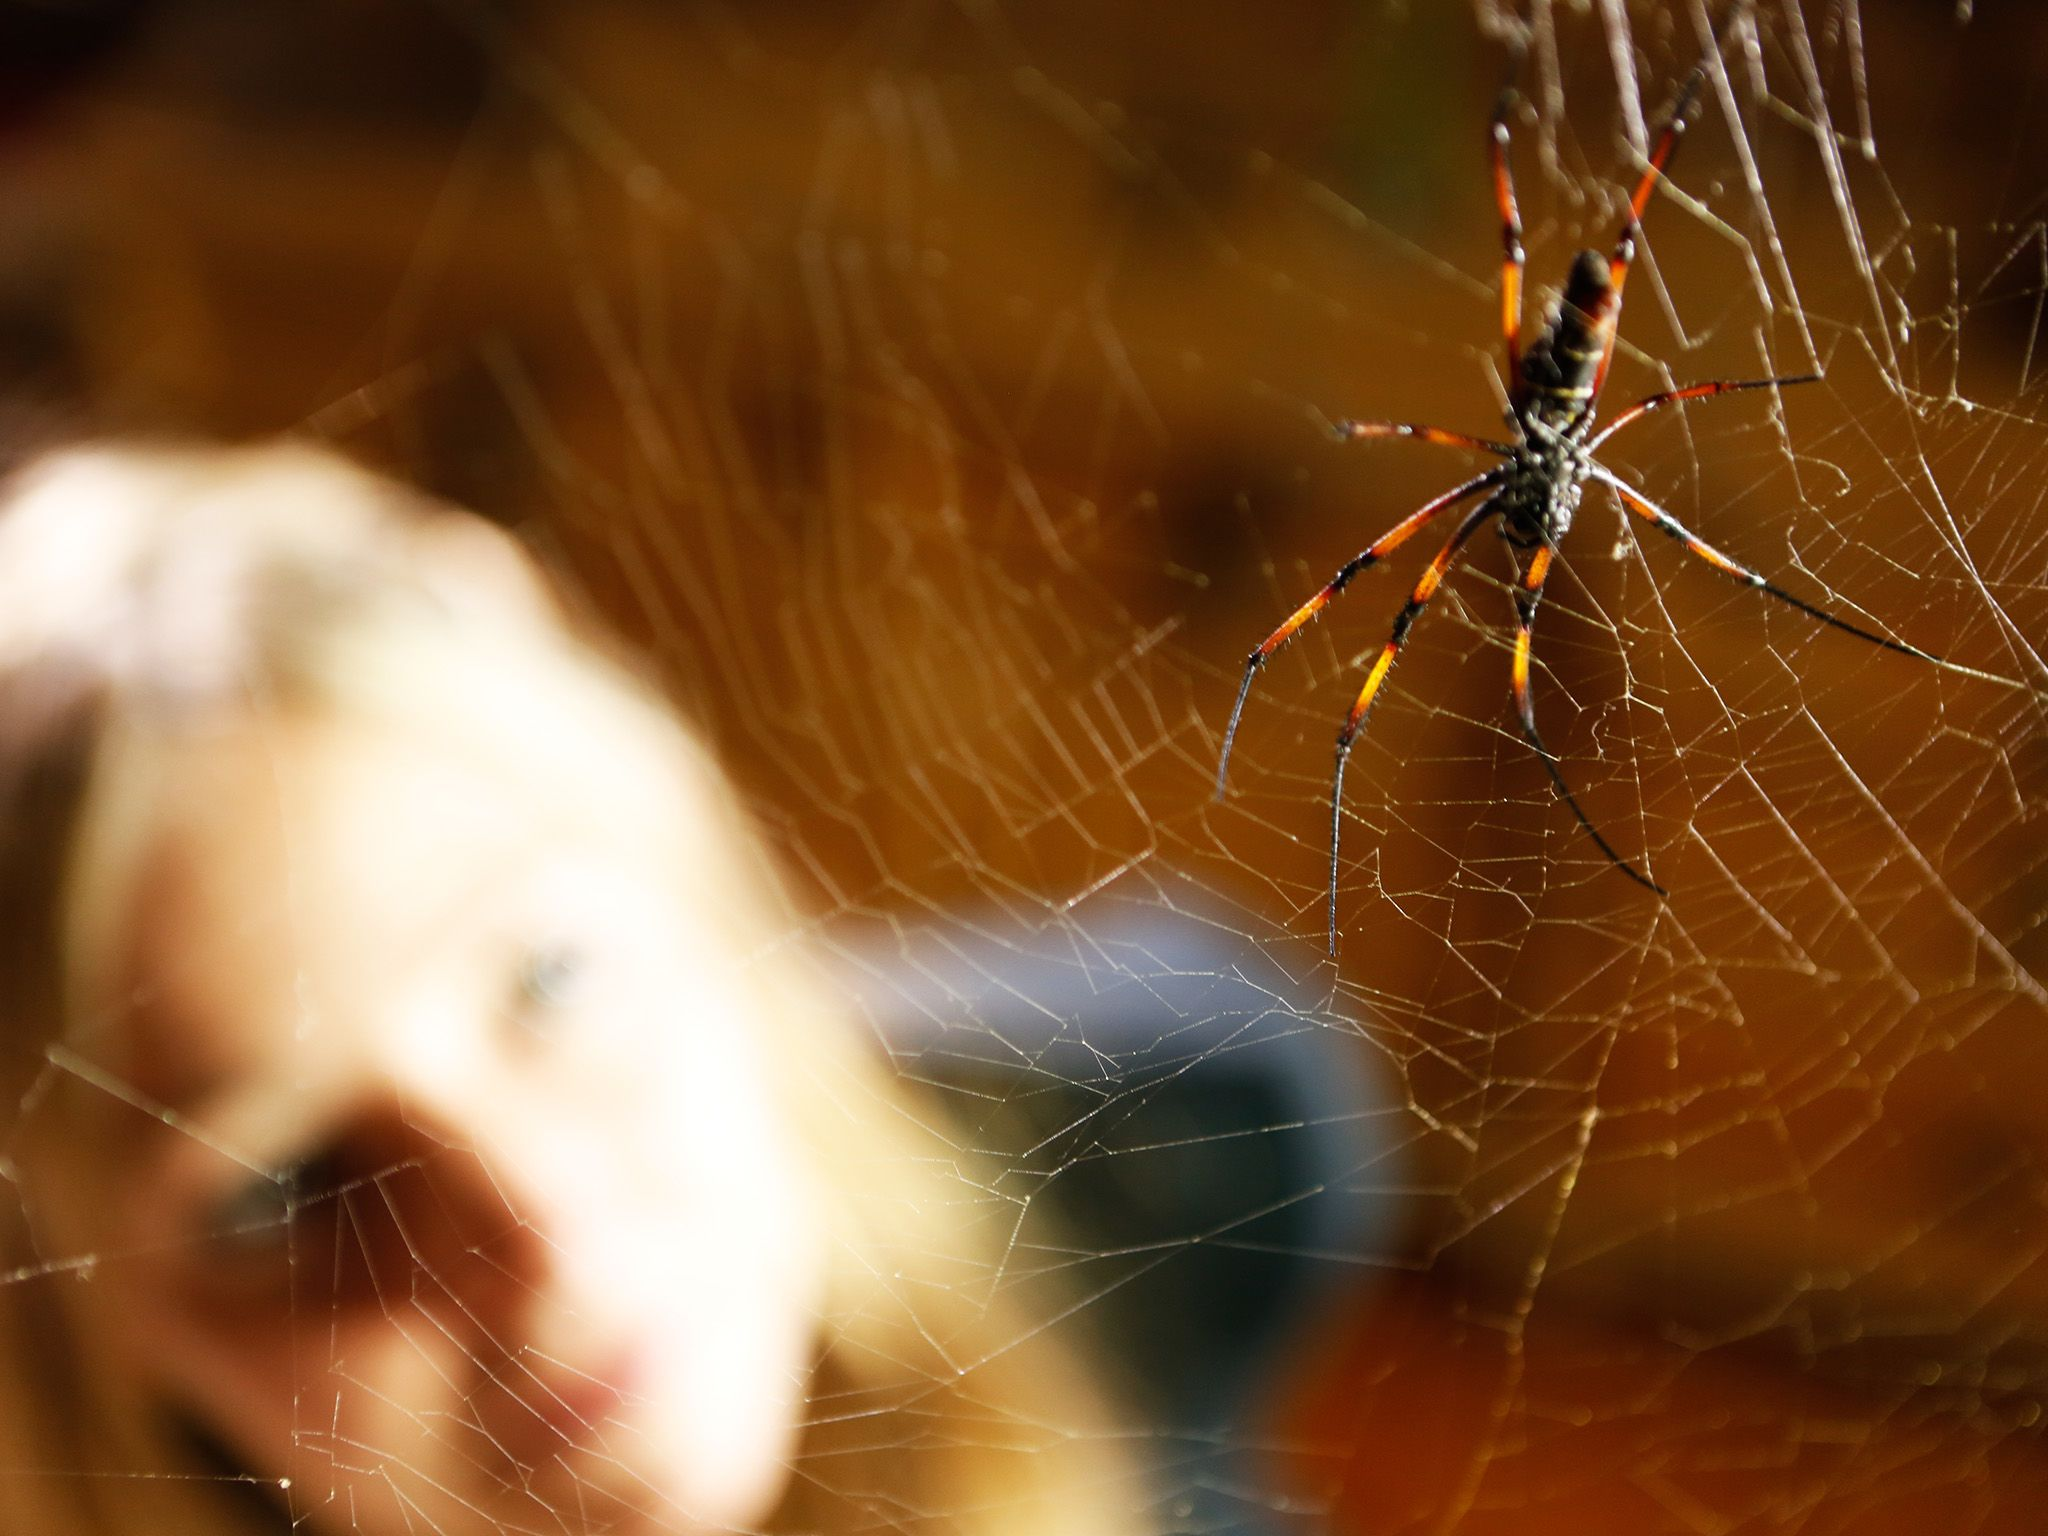 Alice Roberts looks up at the largest spider in the dining room - the golden orb weaver. This... [Photo of the day - June 2015]